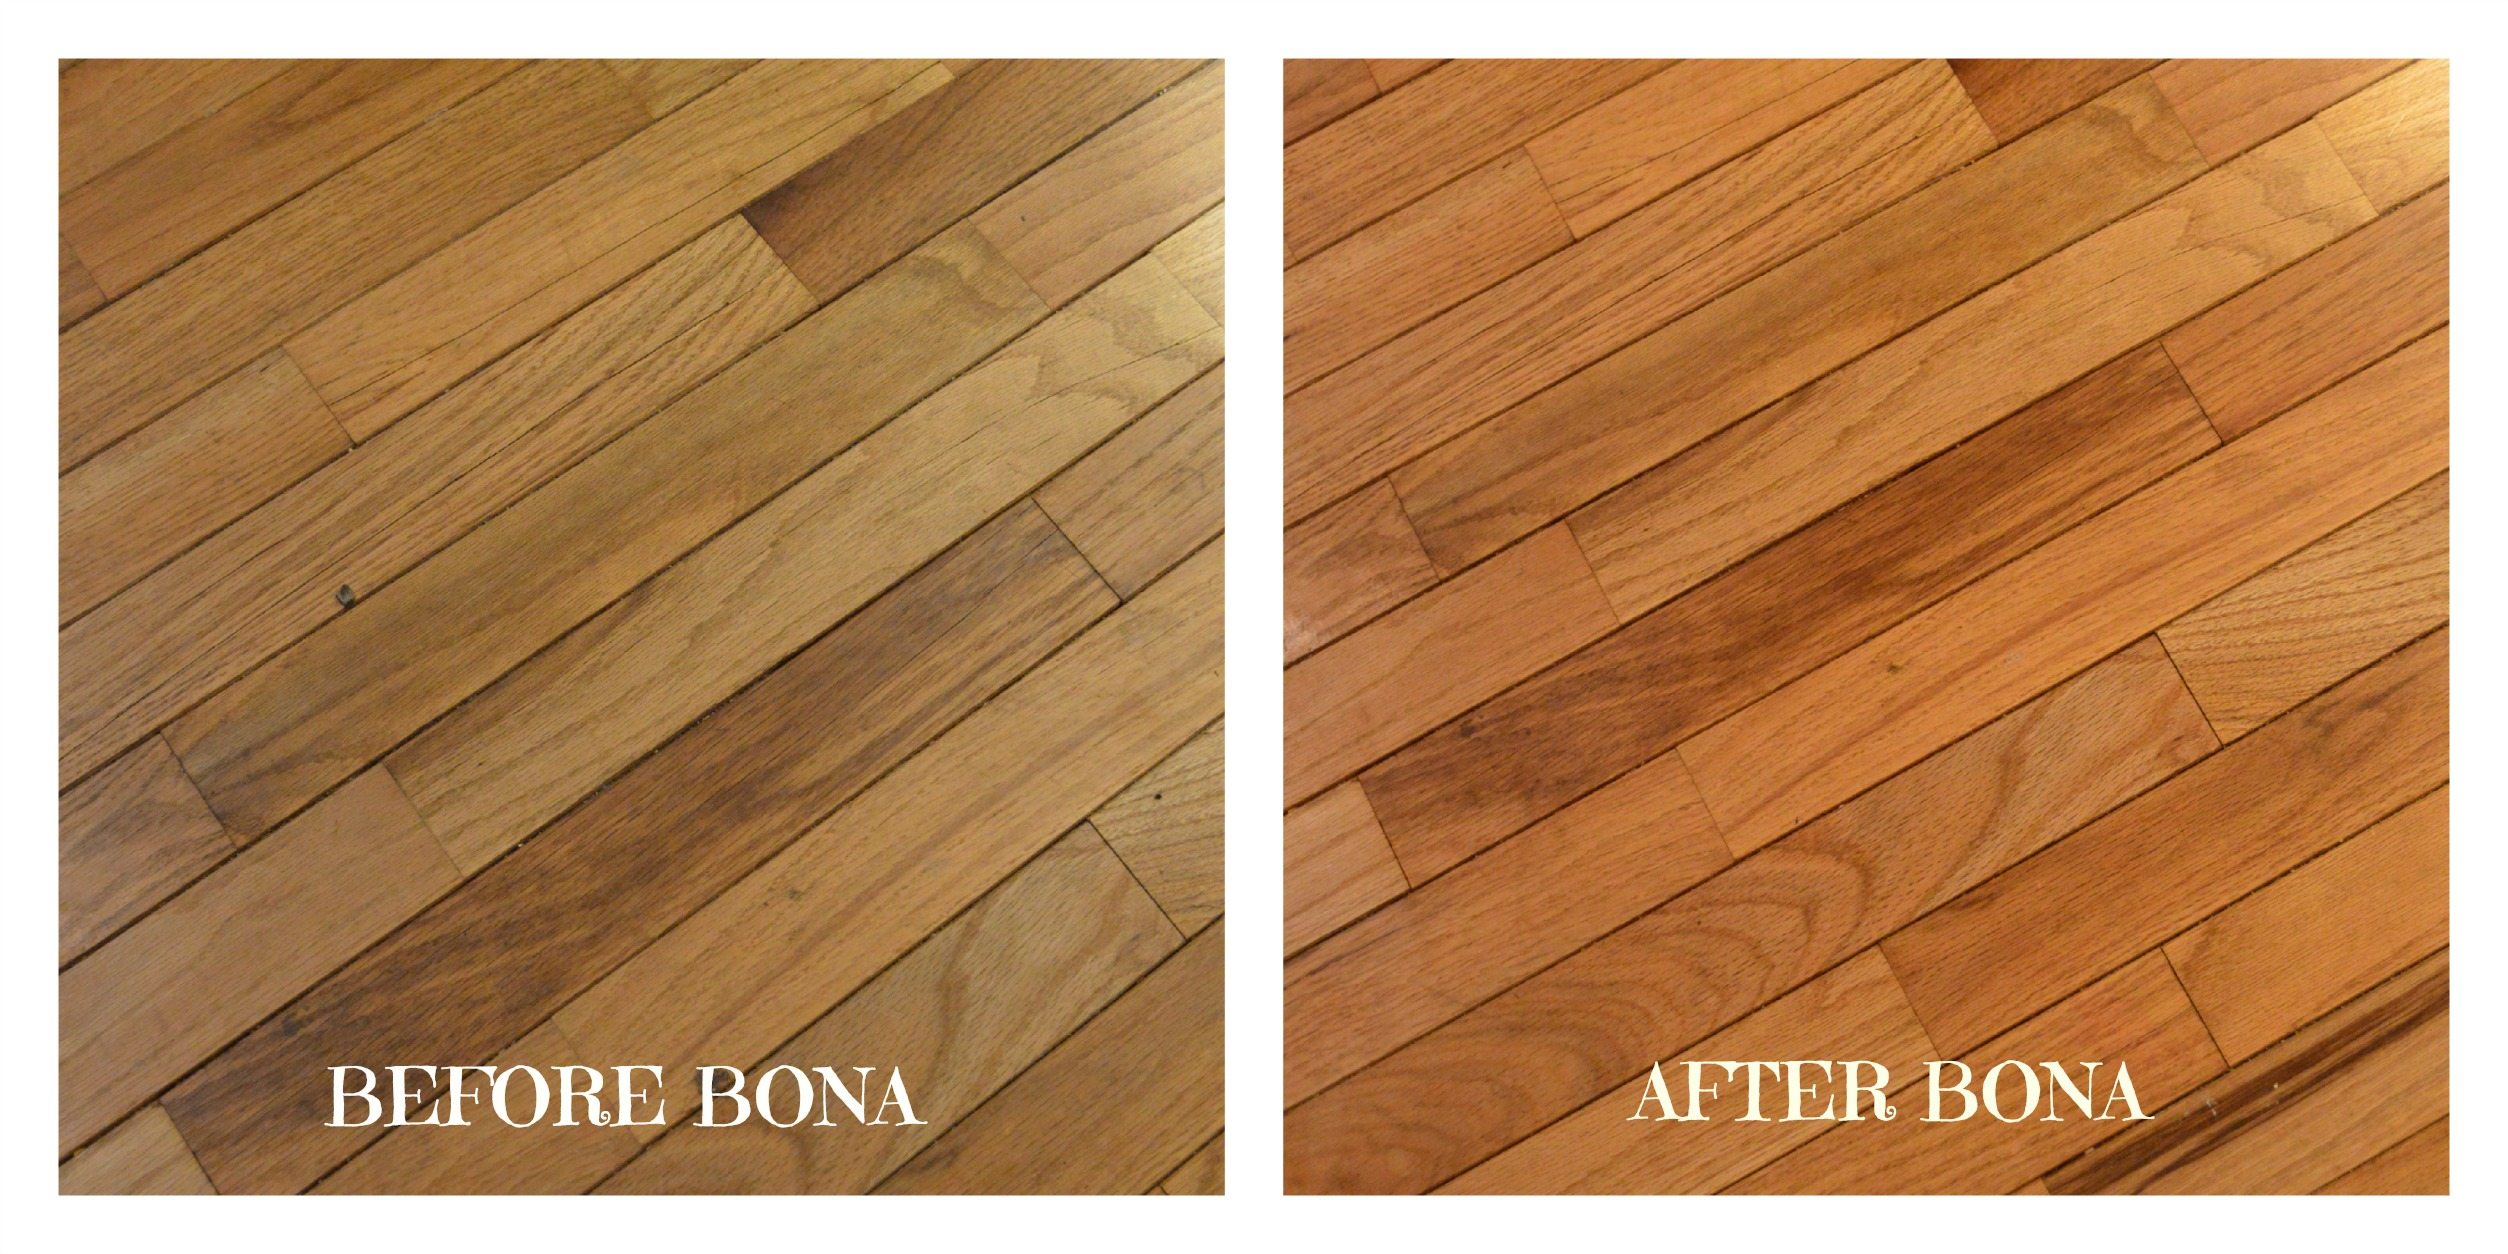 Bona Hardwood Floor Mop Archives Mumblebee Inc